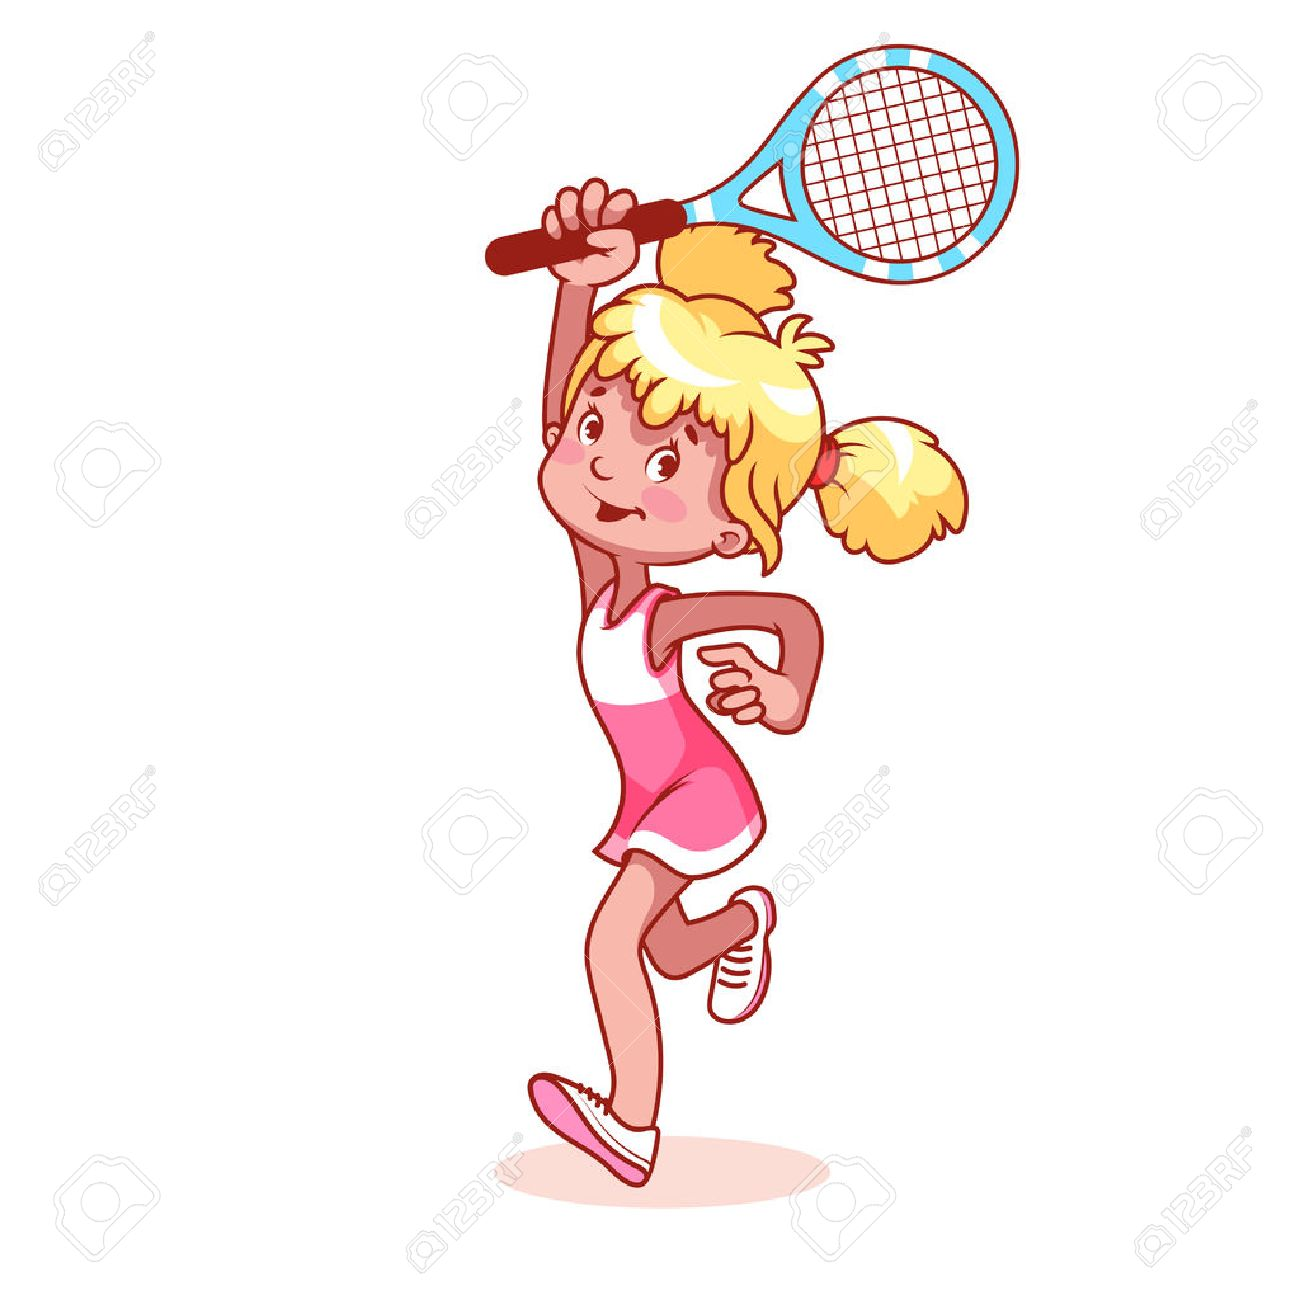 hight resolution of cartoon girl playing tennis clip art illustration on a white background stock vector